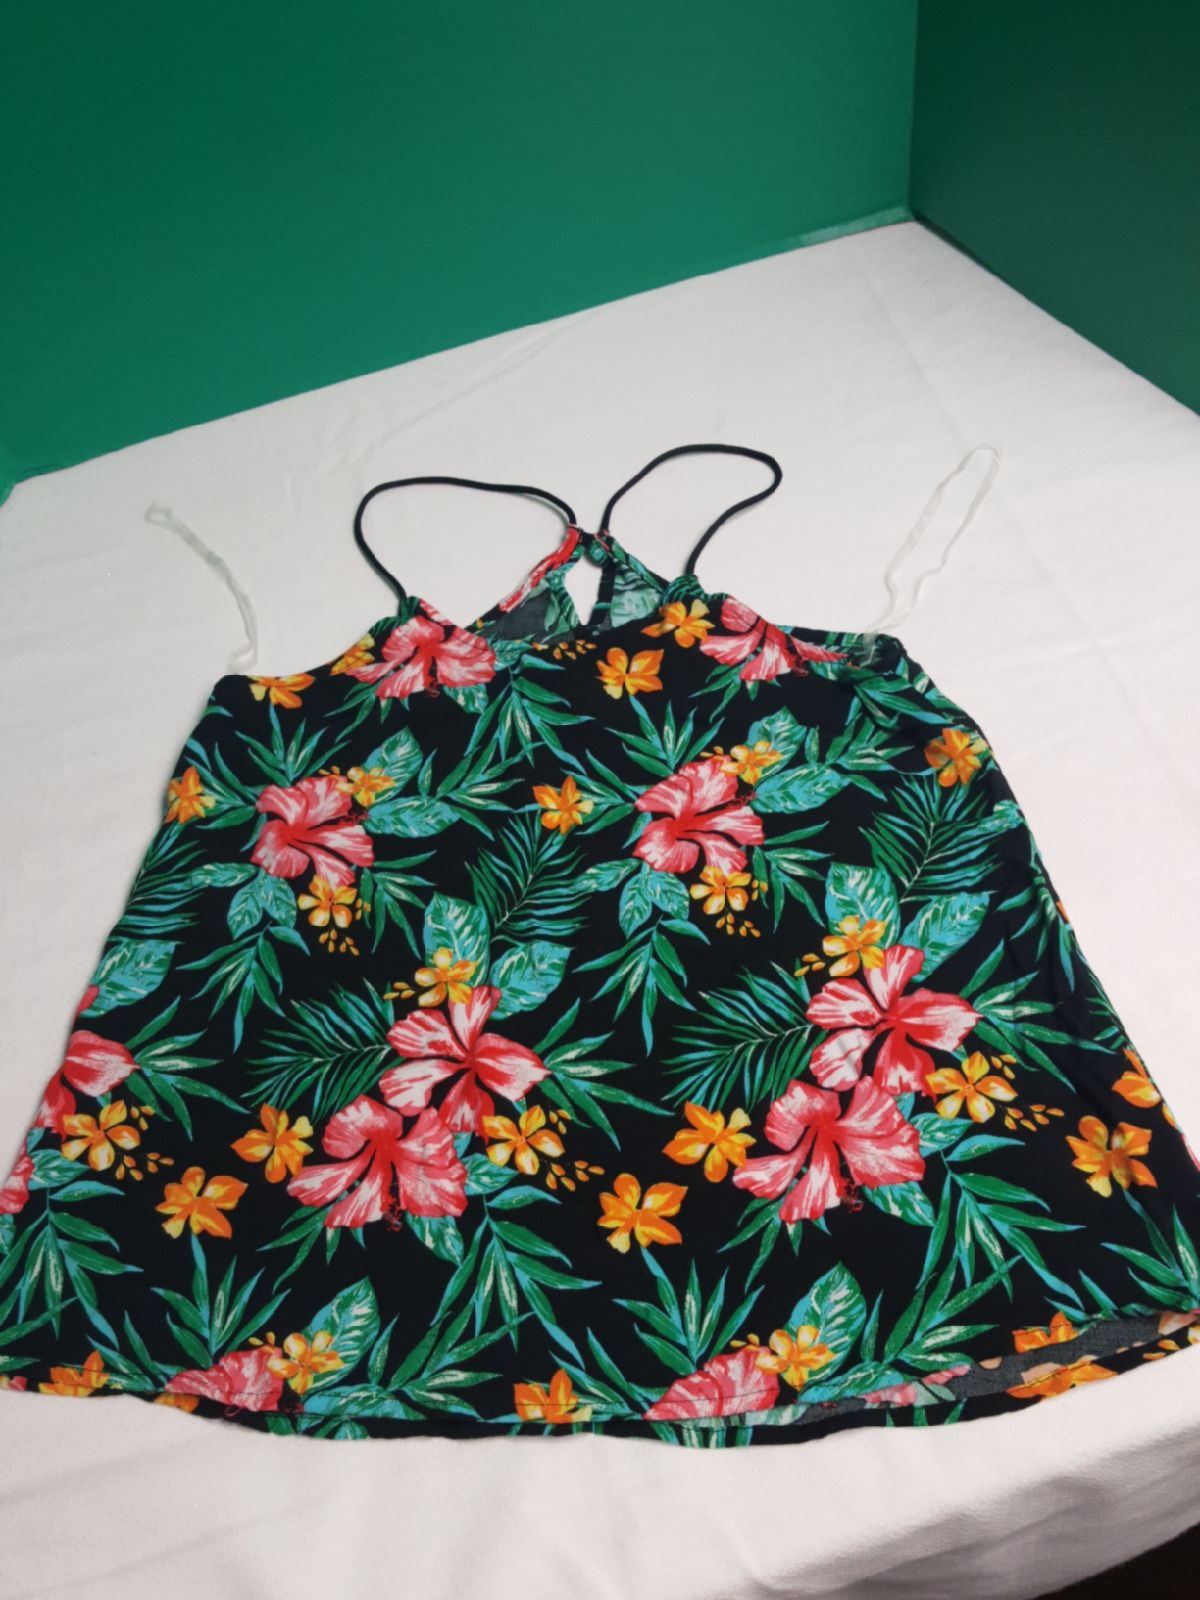 Tank top for women size small